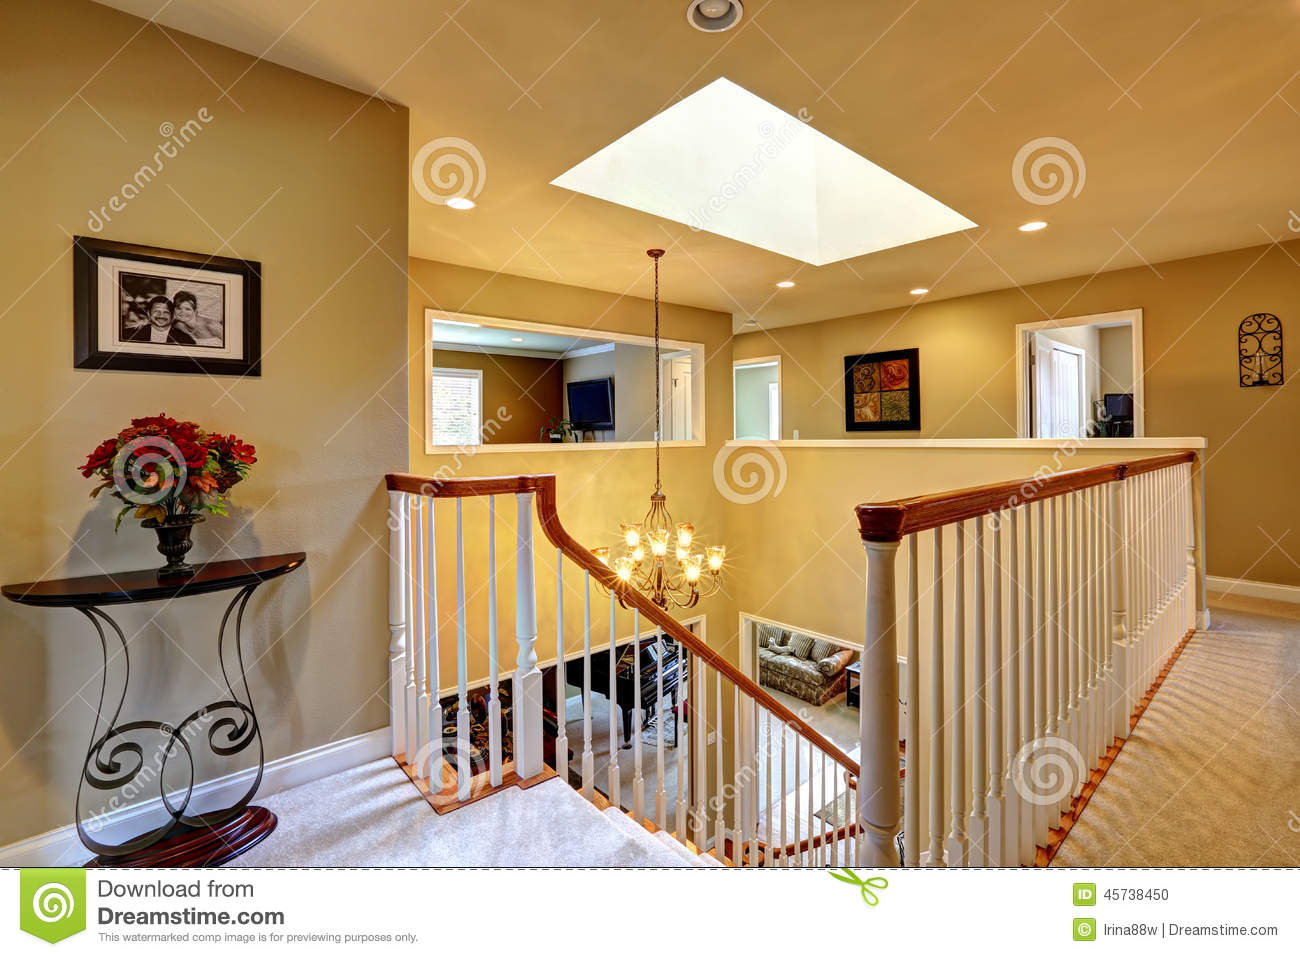 Luxury house interior upstairs hallway with staircase - Images escaliers interieur maison ...